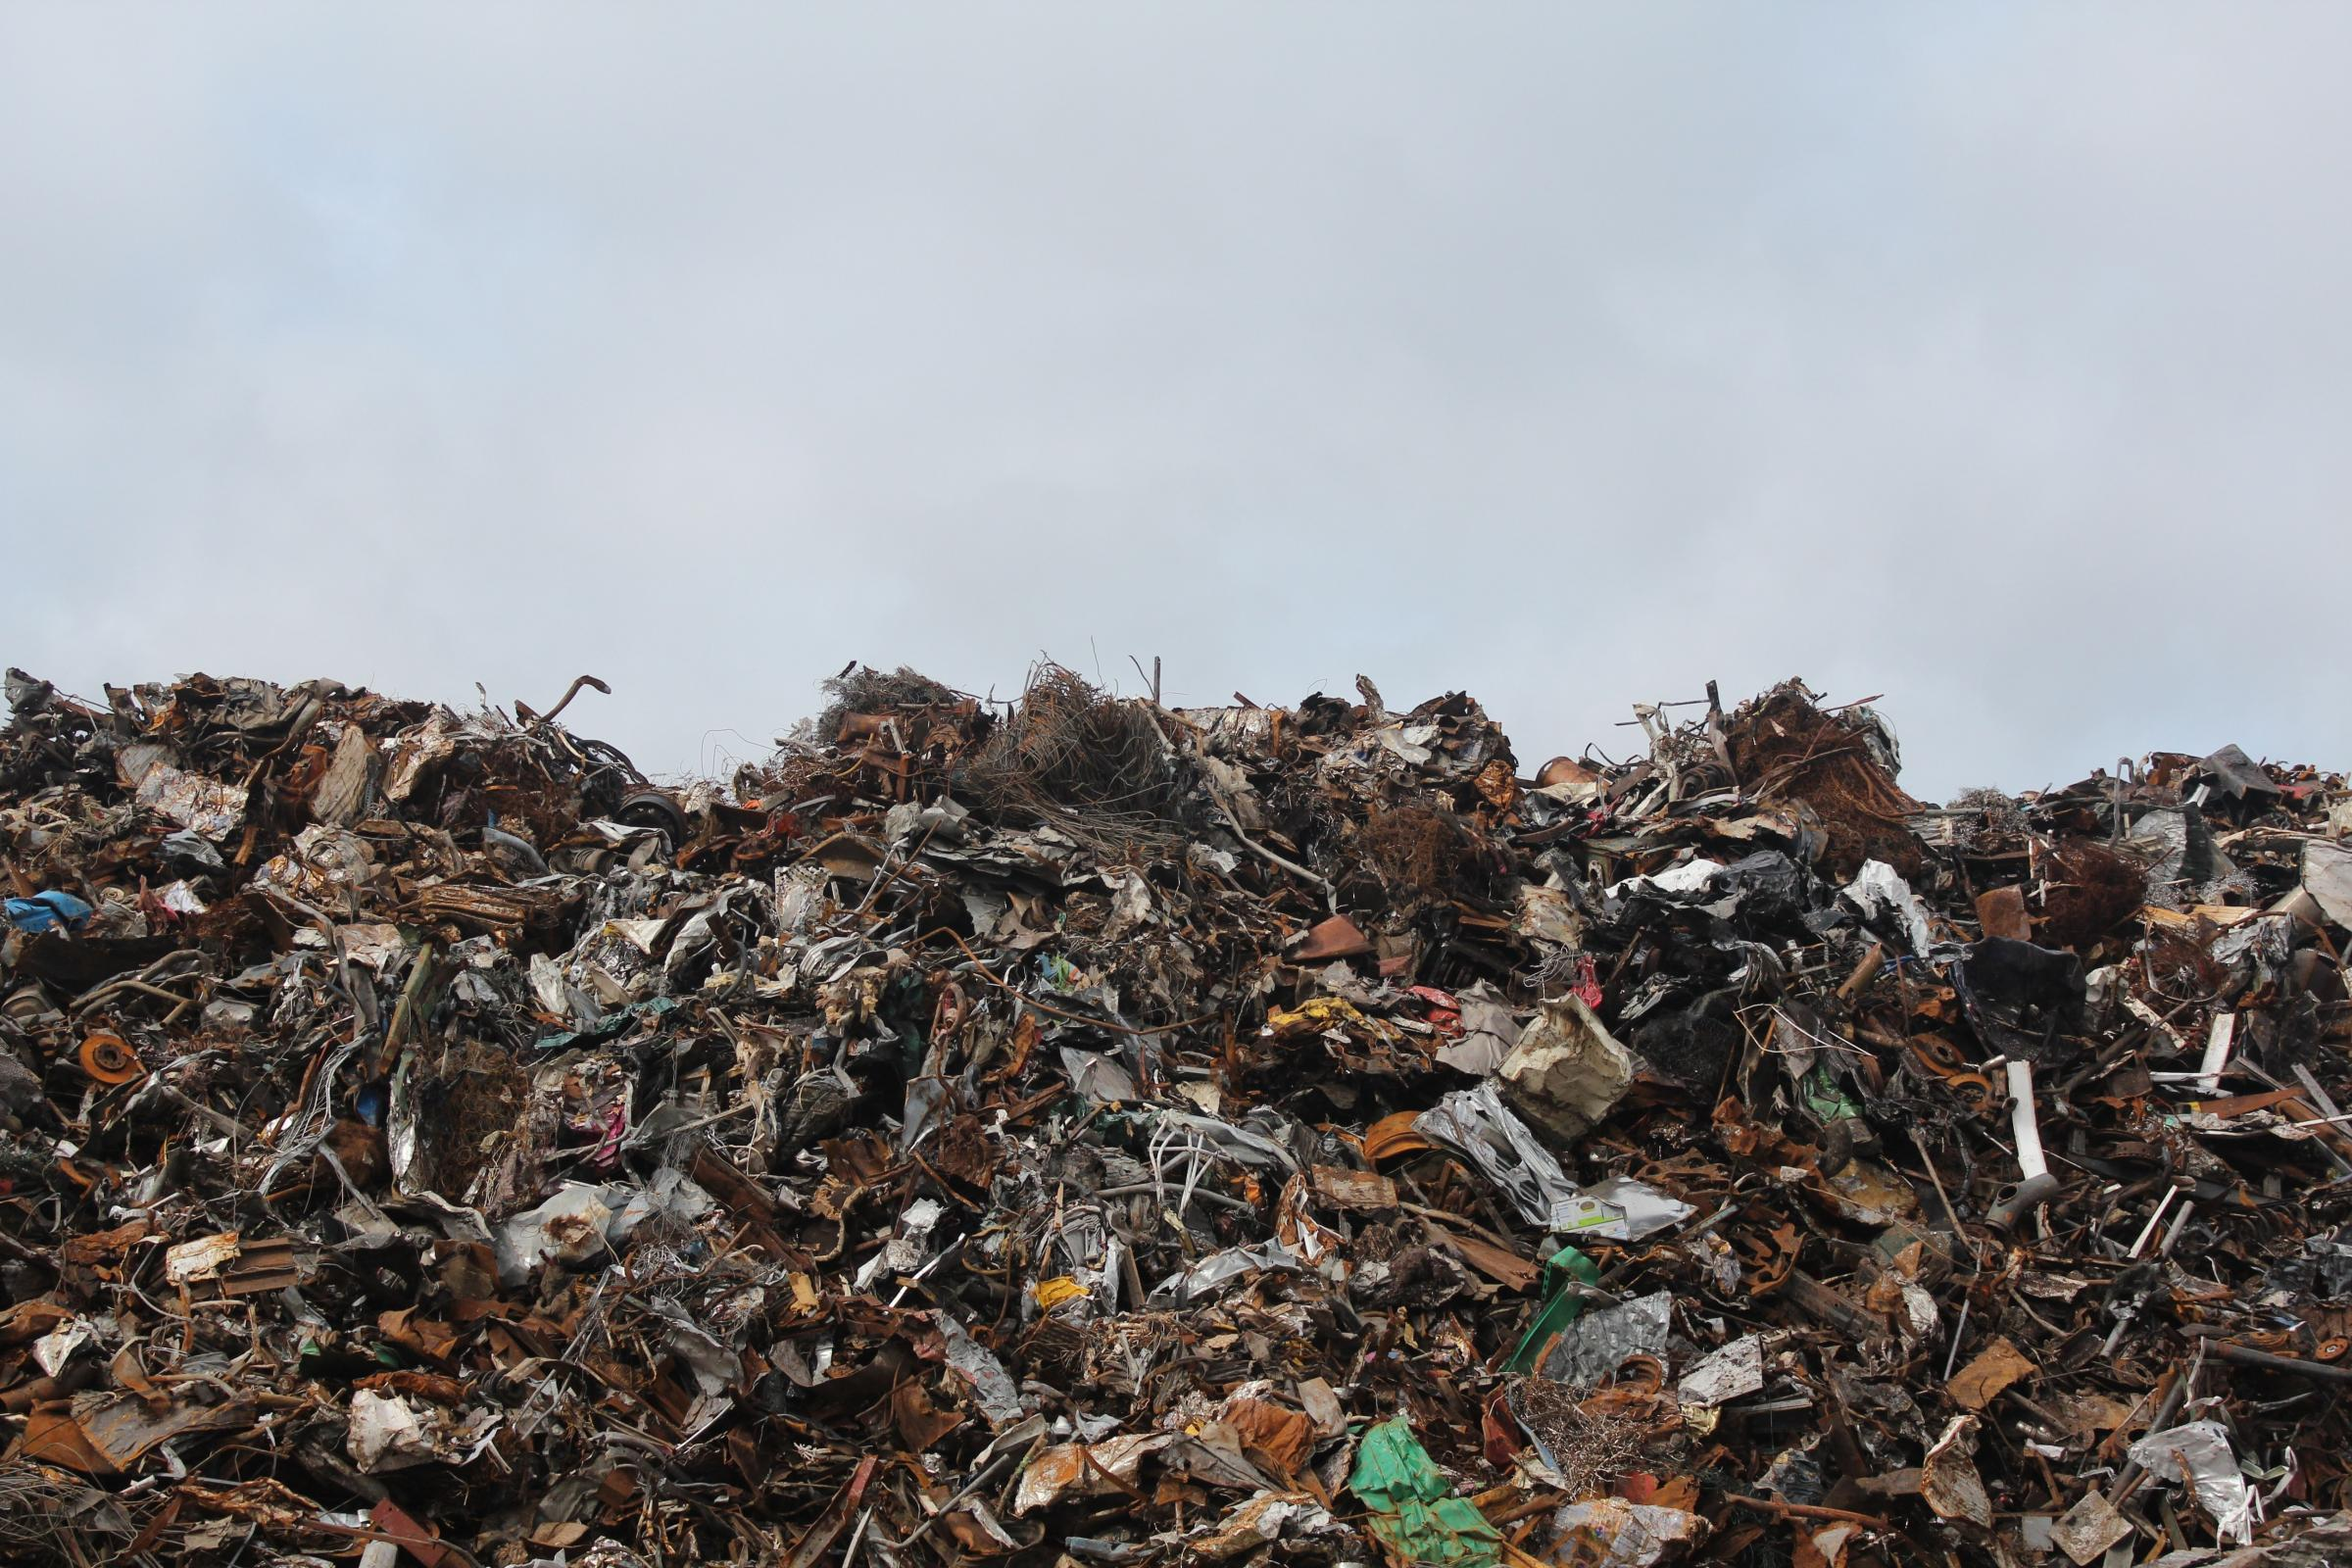 Concerns Scotland is harming the environment as waste exported abroad